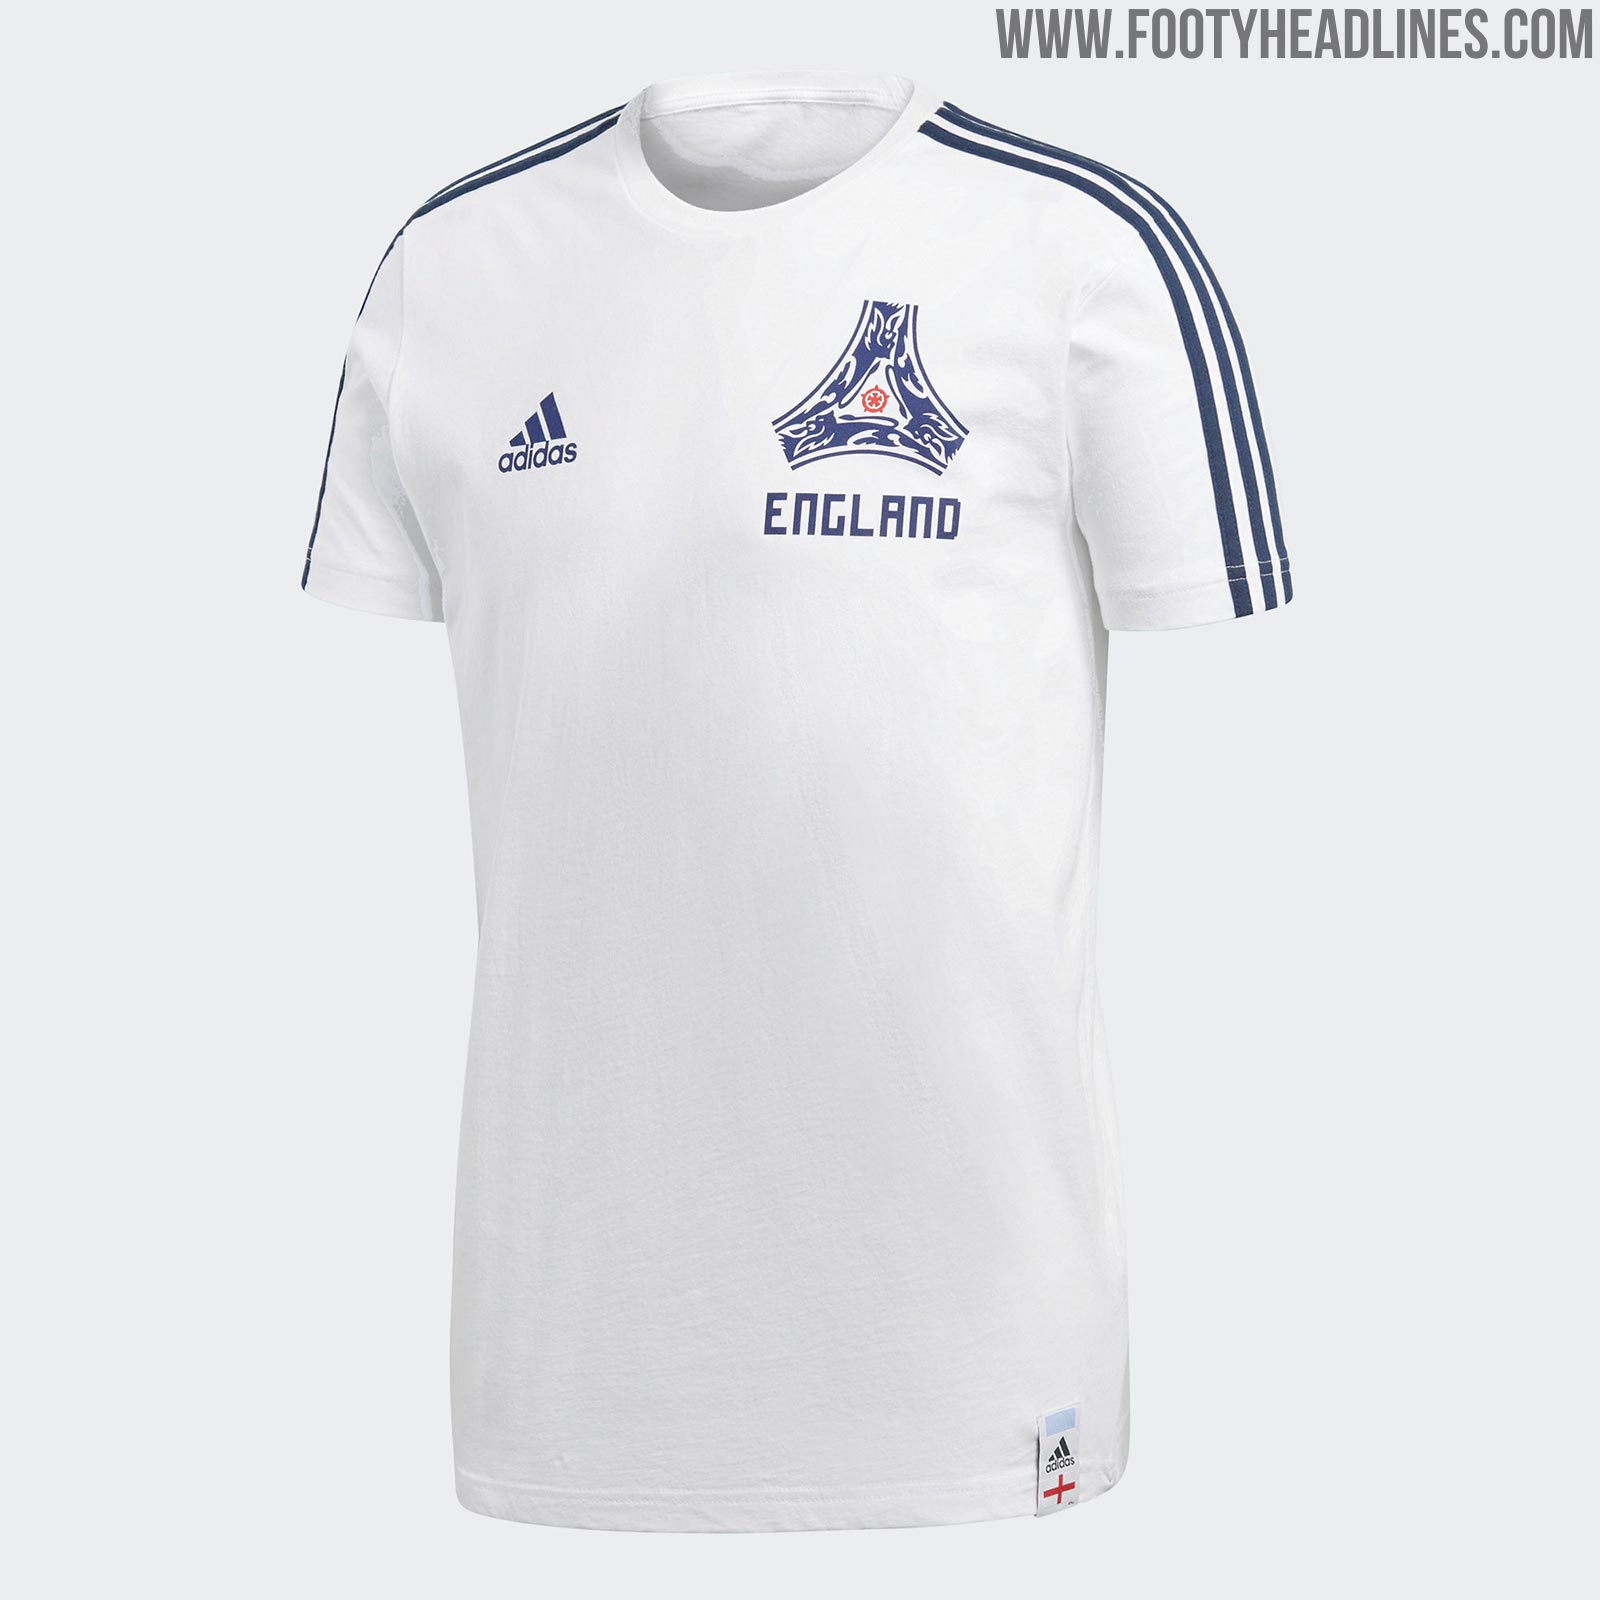 adidas england 2018 world cup shirt and tracksuit collection leaked footy headlines. Black Bedroom Furniture Sets. Home Design Ideas